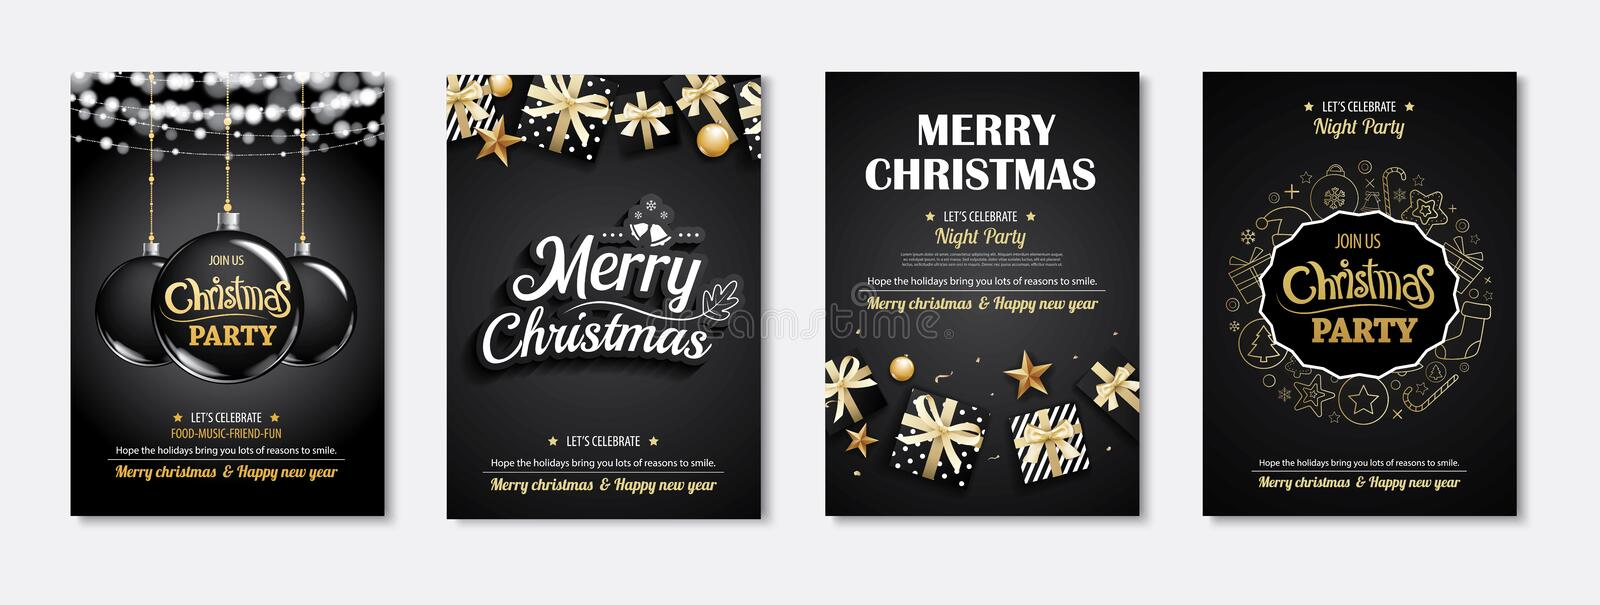 Merry christmas greeting card and party invitations on black background. Vector illustration element for happy new year flyer bro. Chure design vector illustration